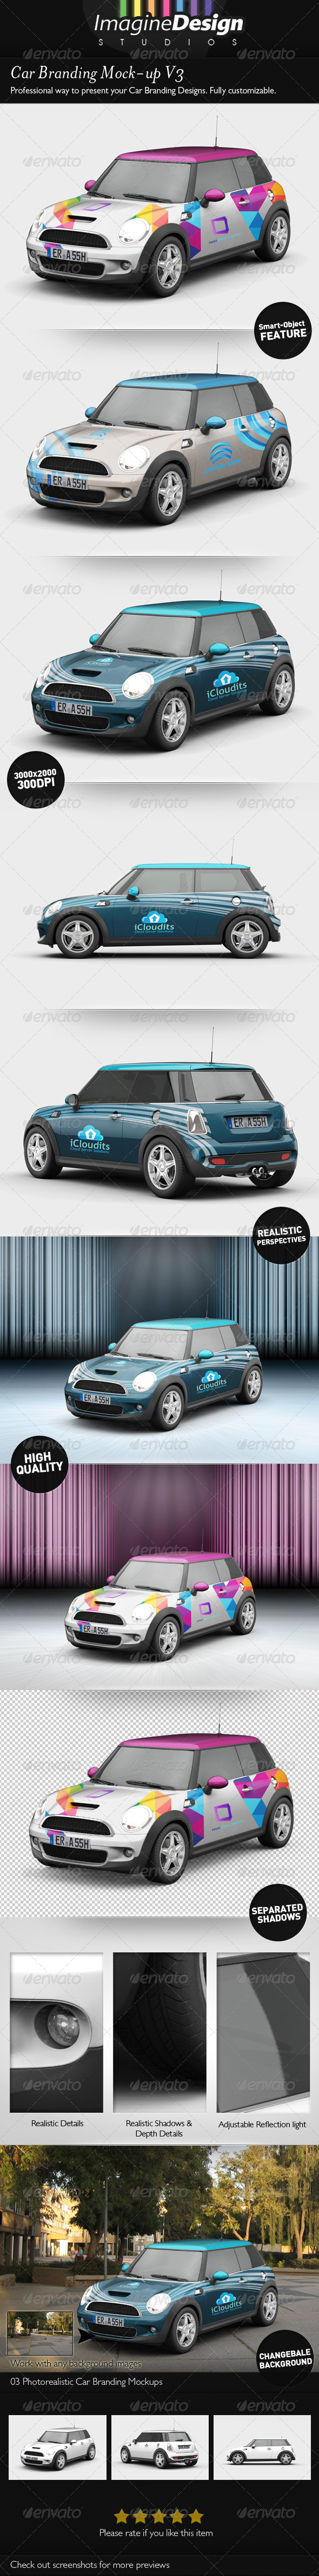 Car Branding Mock-up V3